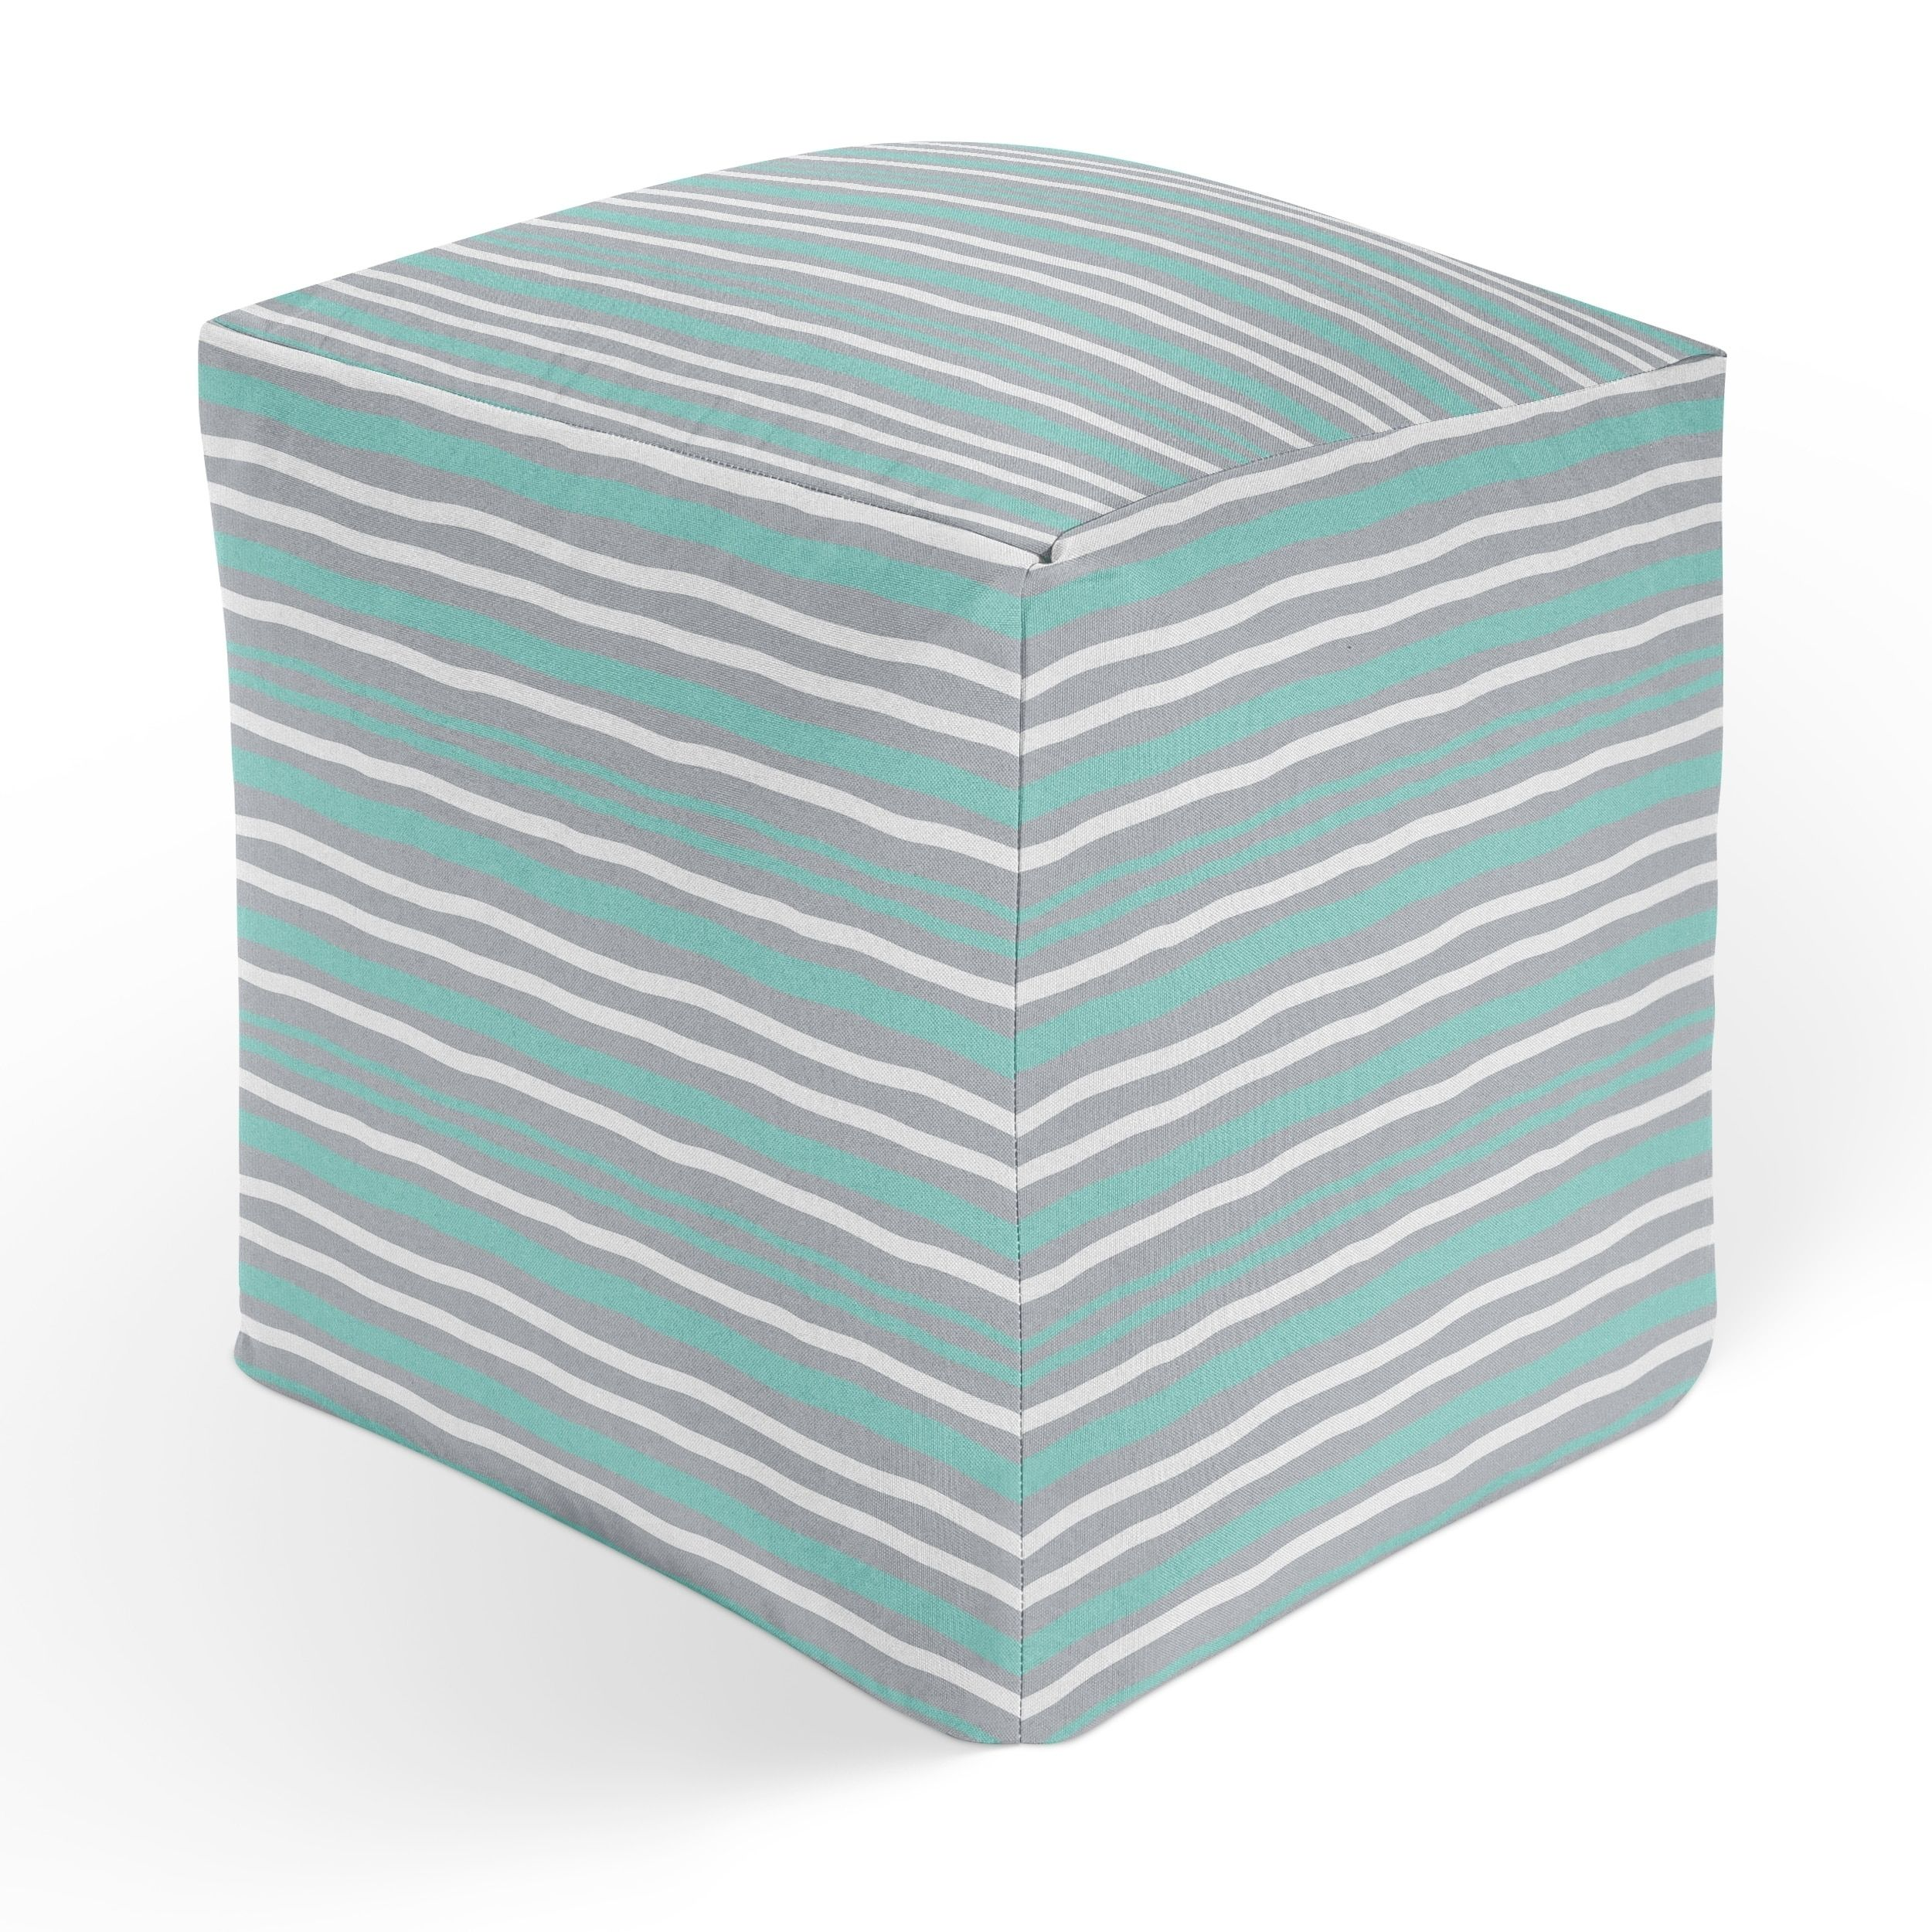 Pouf Mint Kavka Designs Tiffany Wong Rip Mint Square Pouf Square